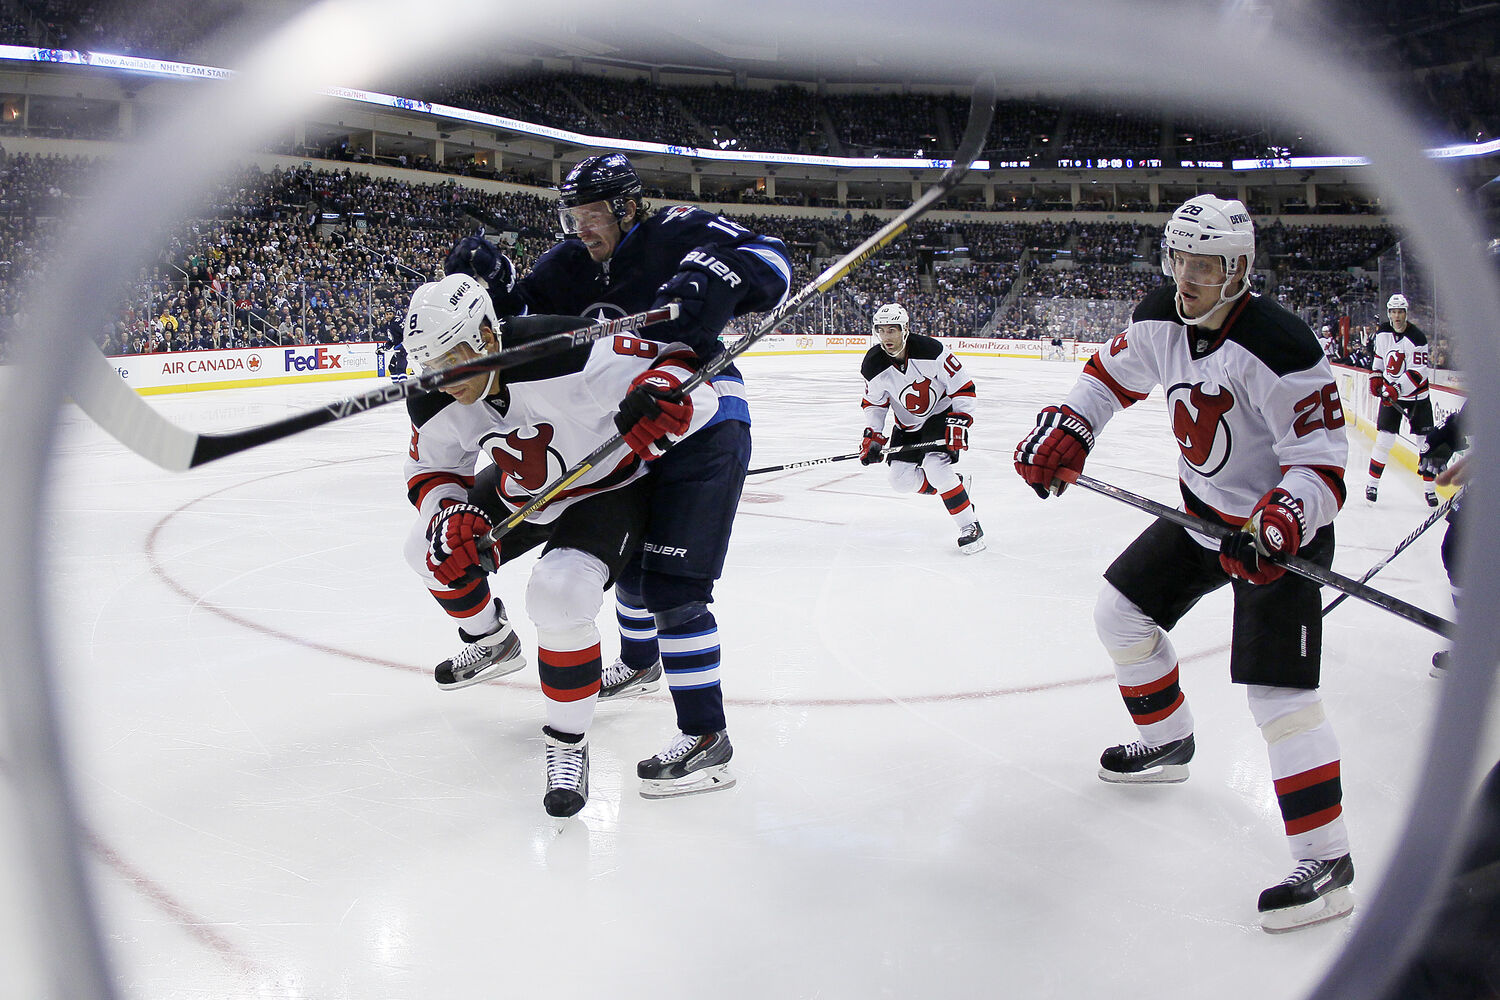 Bryan Little drives for the corner against Dainius Zubrus during the second period. (WINNIPEG FREE PRESS)